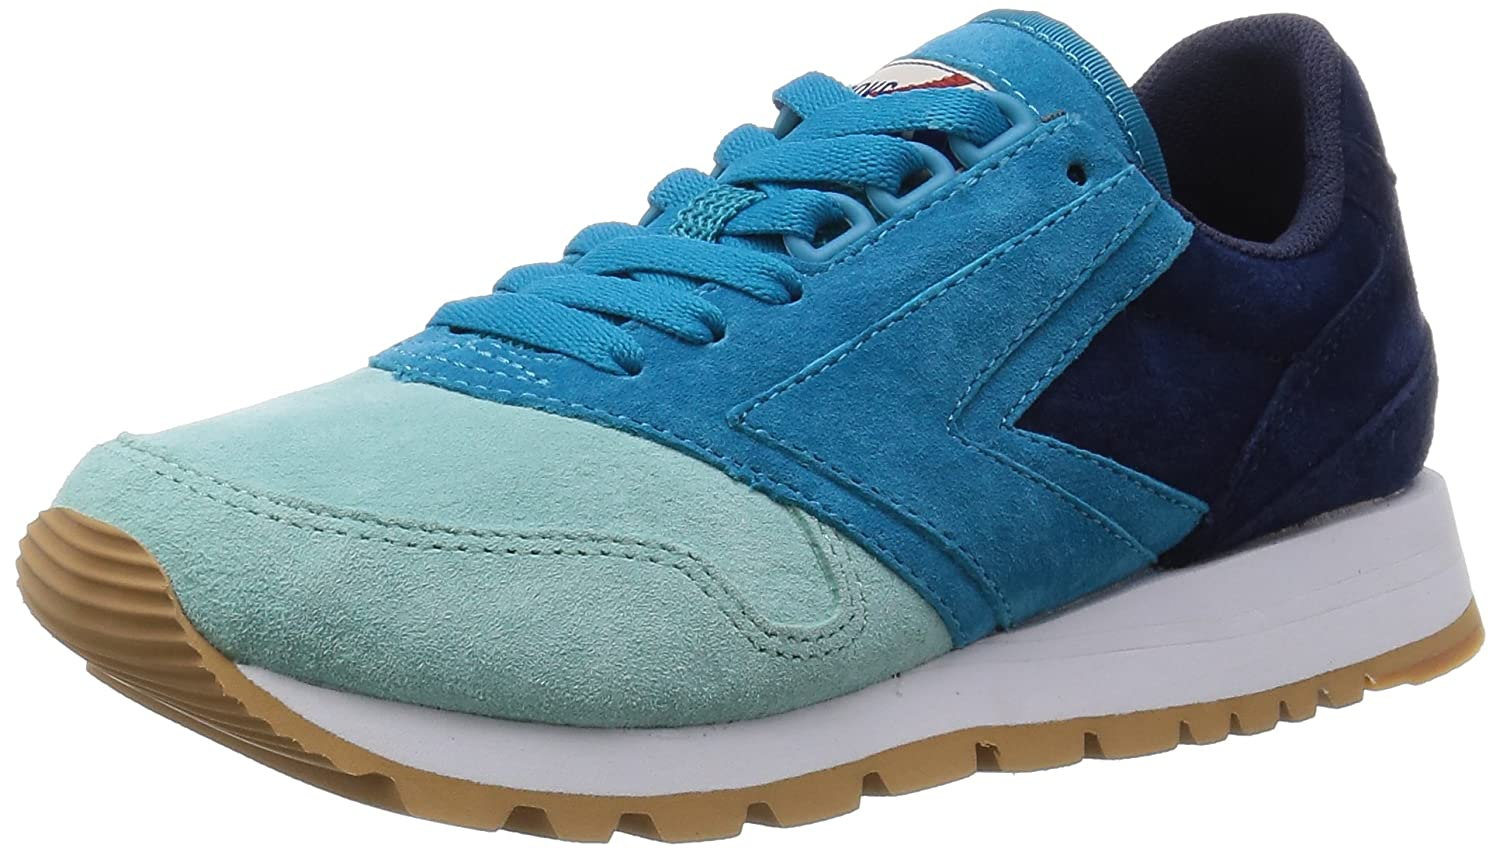 Brooks Women's Chariot B01E70IIRK 9 B(M) US|Patriot Blue/Blue Light/Capri Breeze